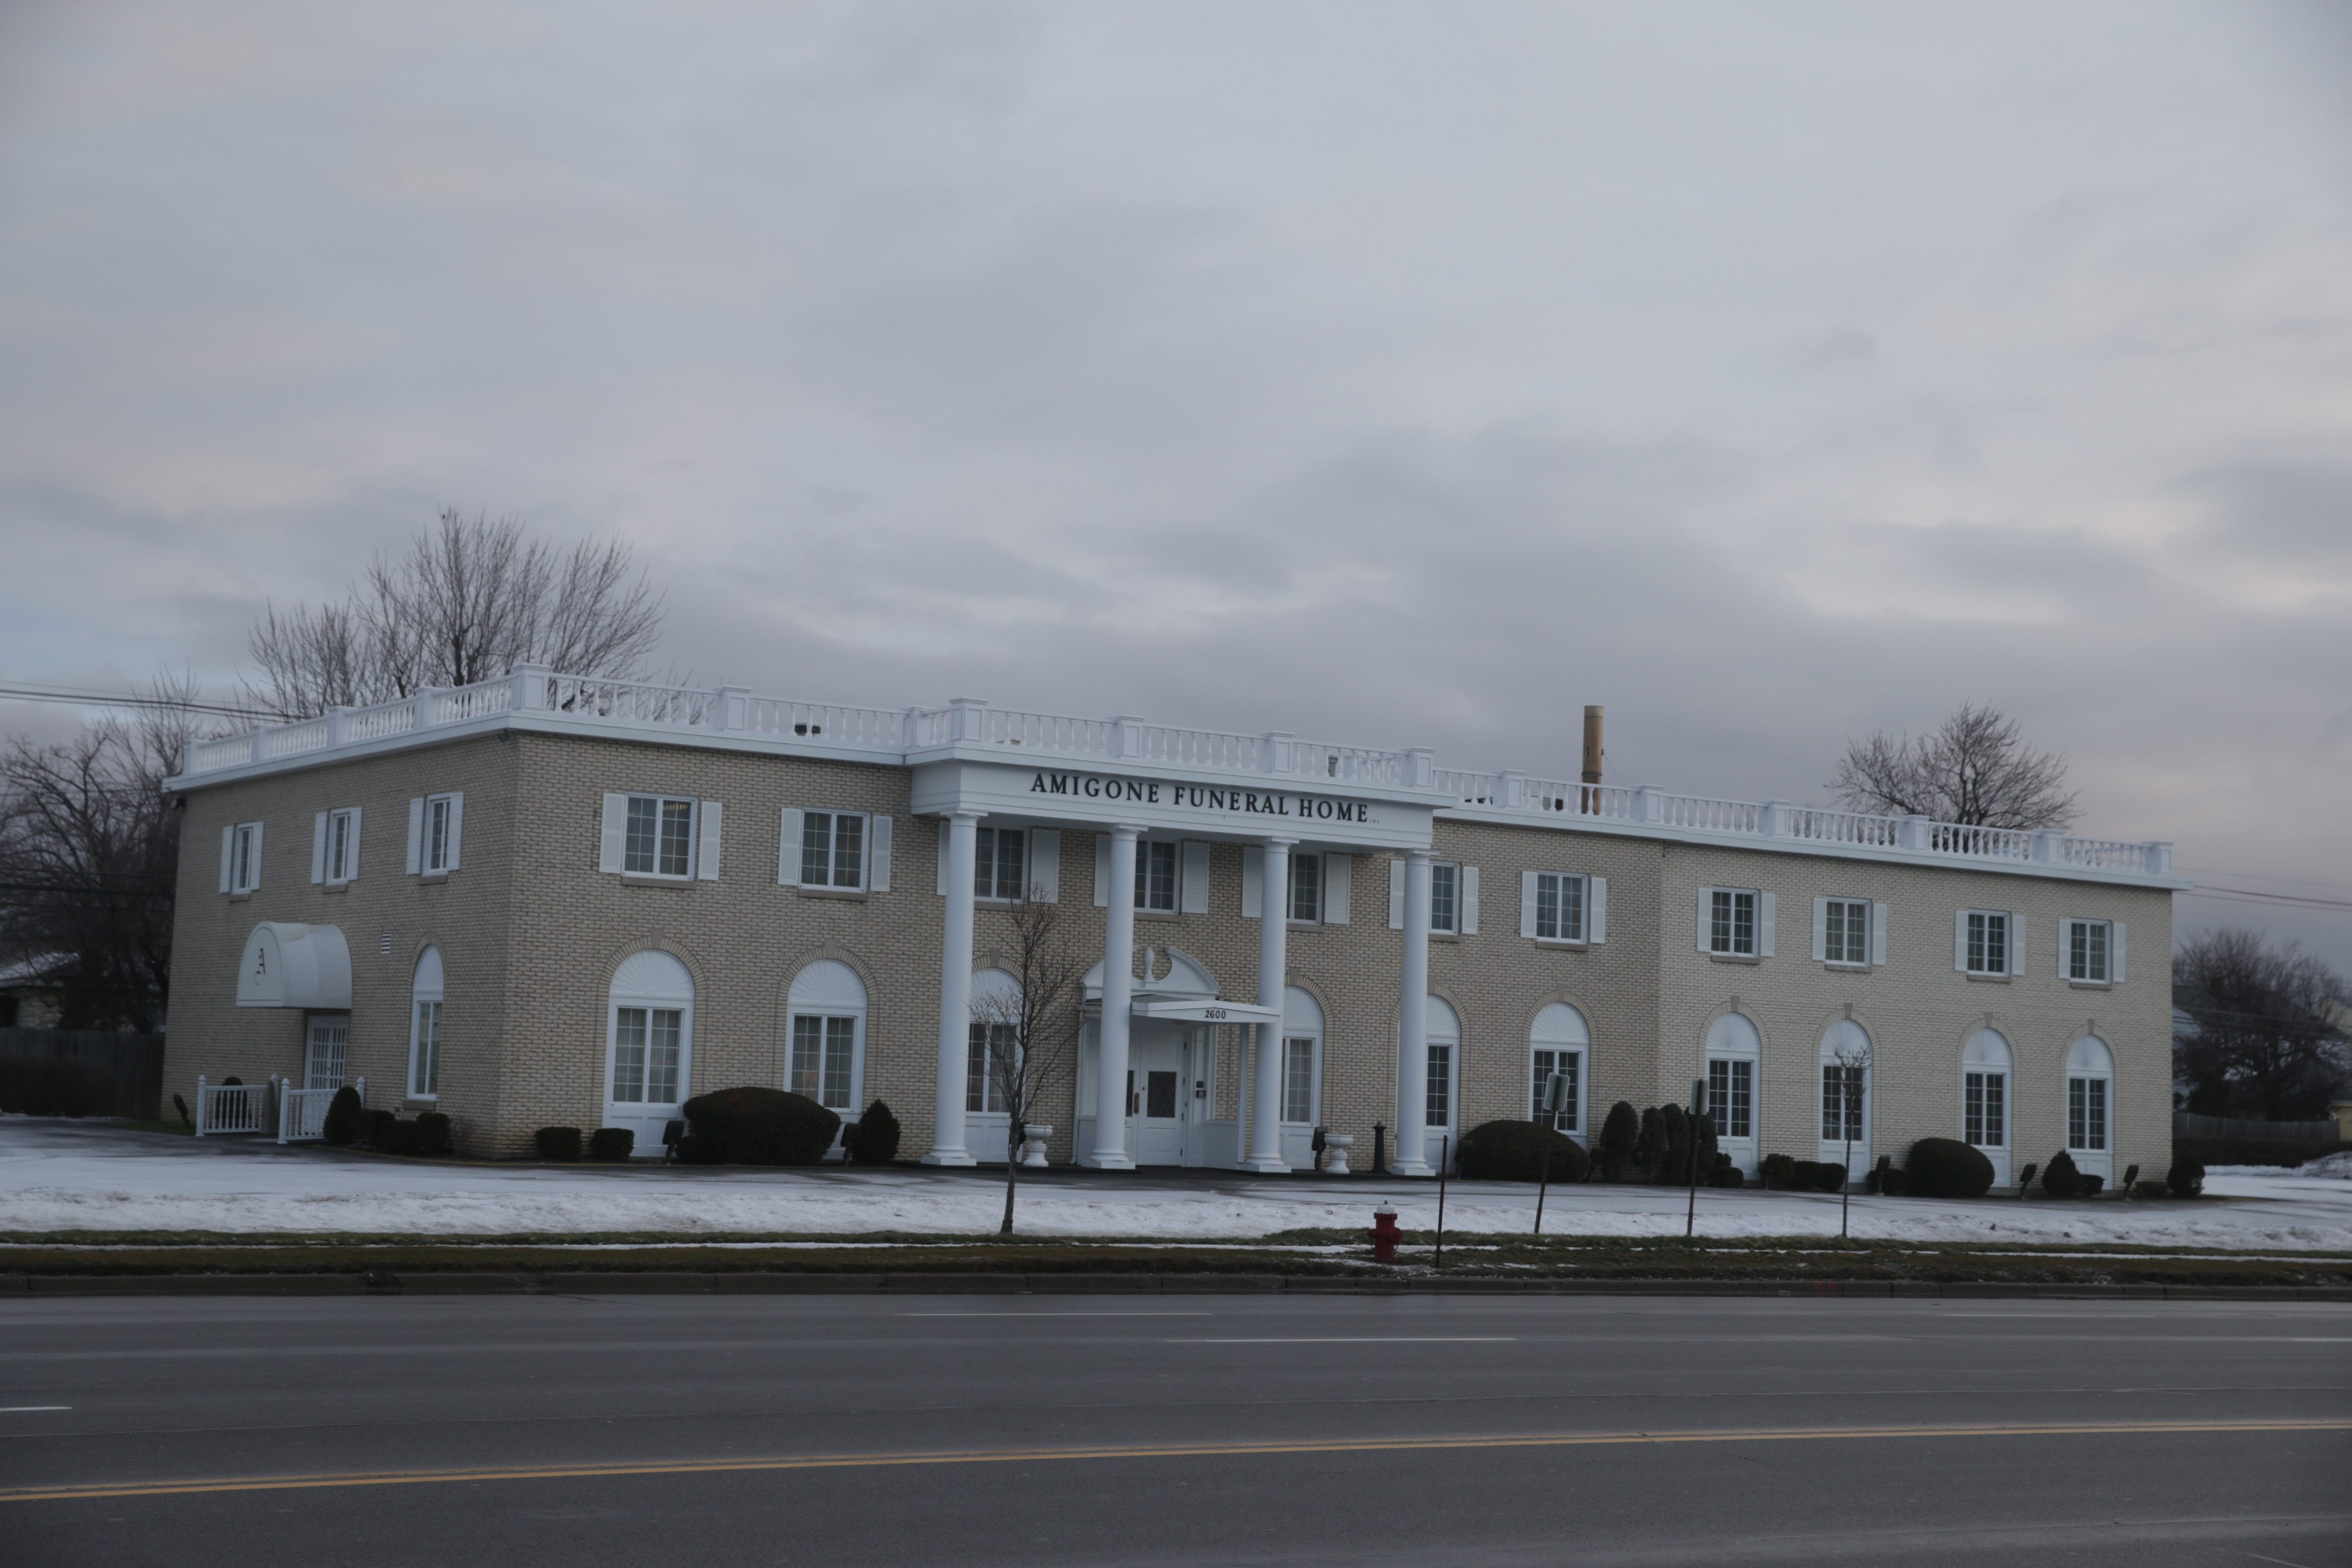 Amigone Funeral Home  on Sheridan Drive , indicated the crematory would resume operations on Friday, more than three years after the system was shut down following neighbor complaints in Town of Tonawanda, N.Y., on  Wednesday,  Jan. 27, 2016.   (John Hickey/Buffalo News)